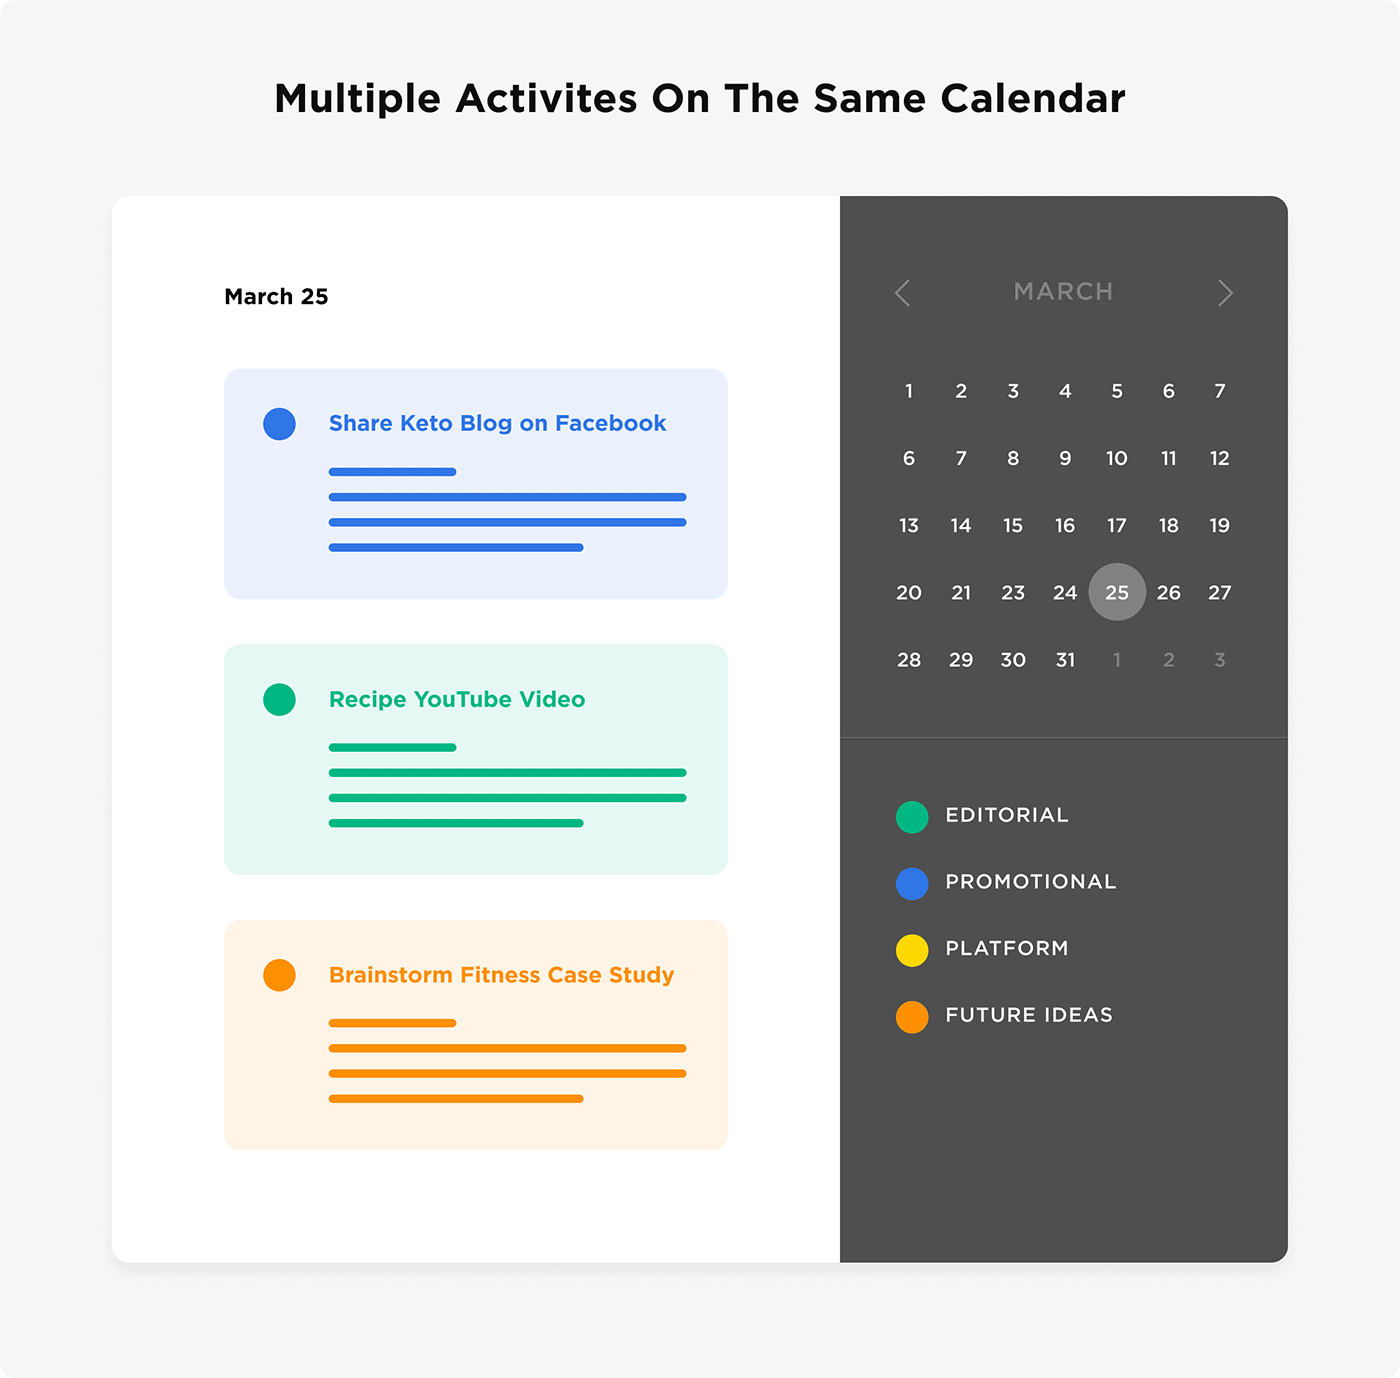 Multiple activities on the same calendar